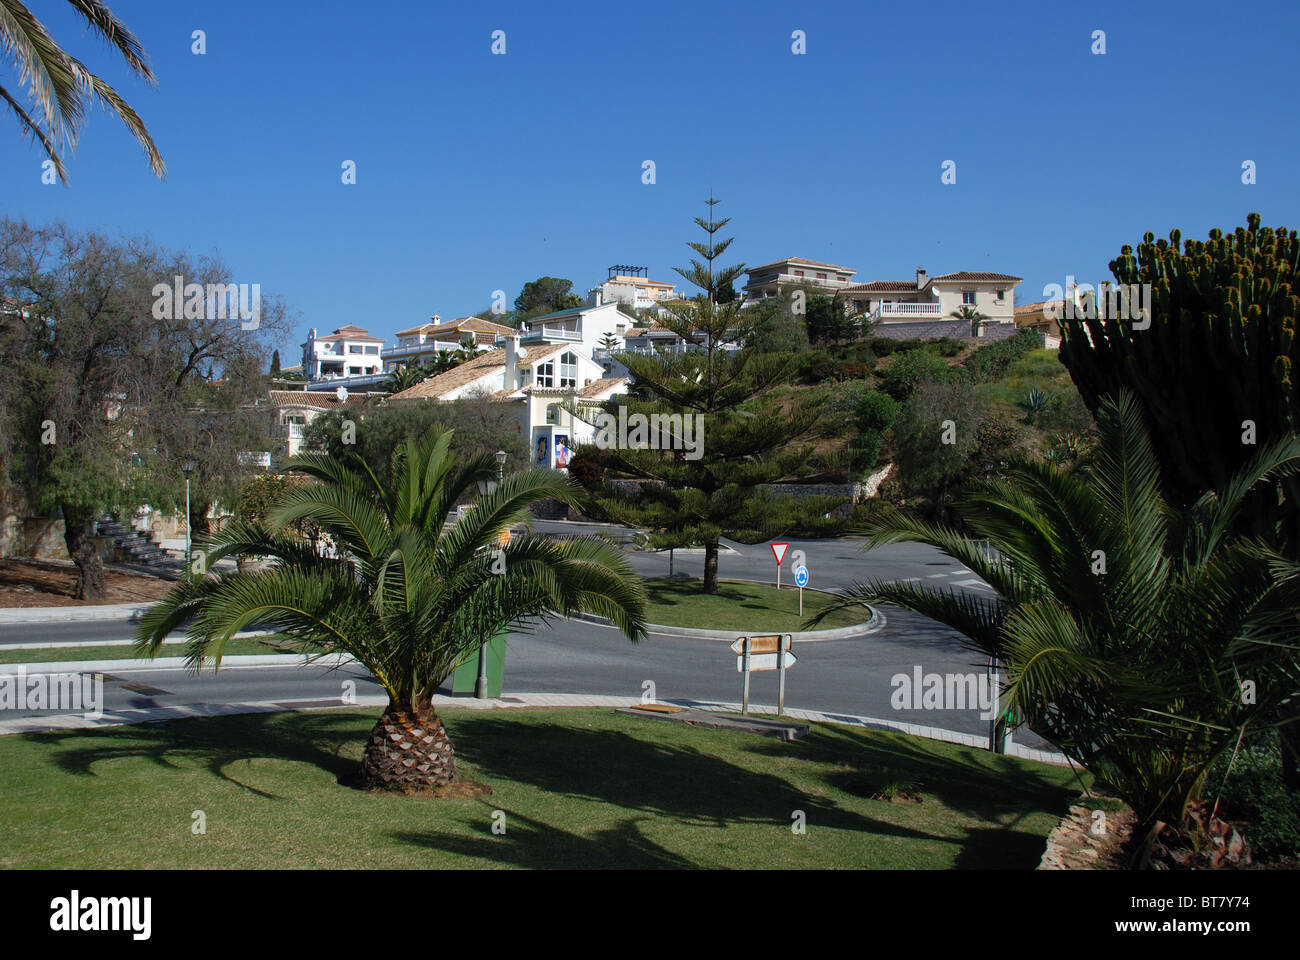 Entrance to the urbanisation with villas to the rear, Torrenueva, Mijas Costa, Costa del Sol, Malaga Province, Andalucia, - Stock Image